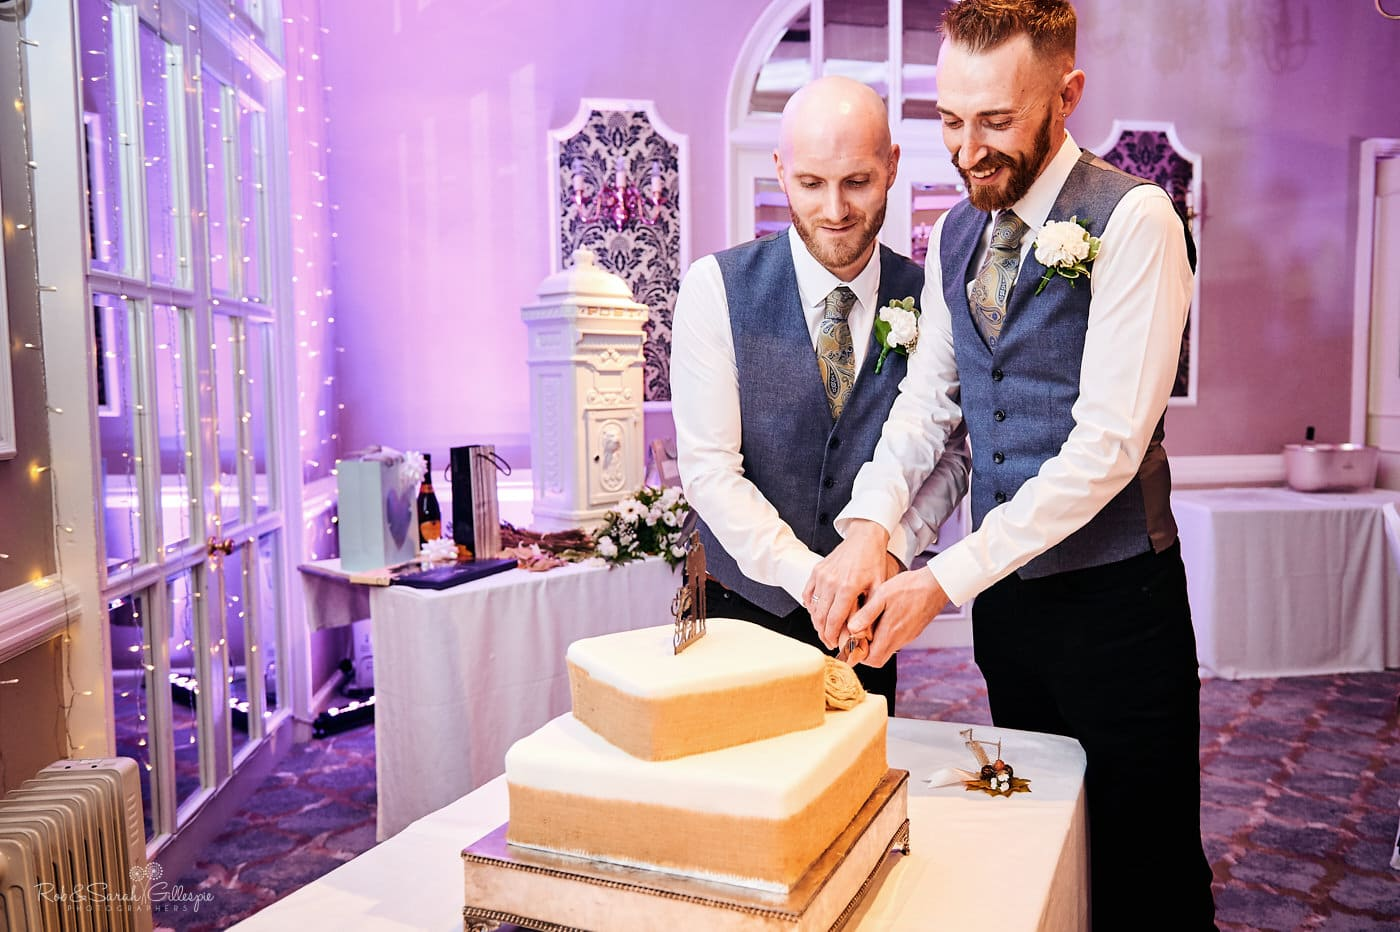 Two grooms cut wedding cake at Moor Hall Hotel same-sex wedding